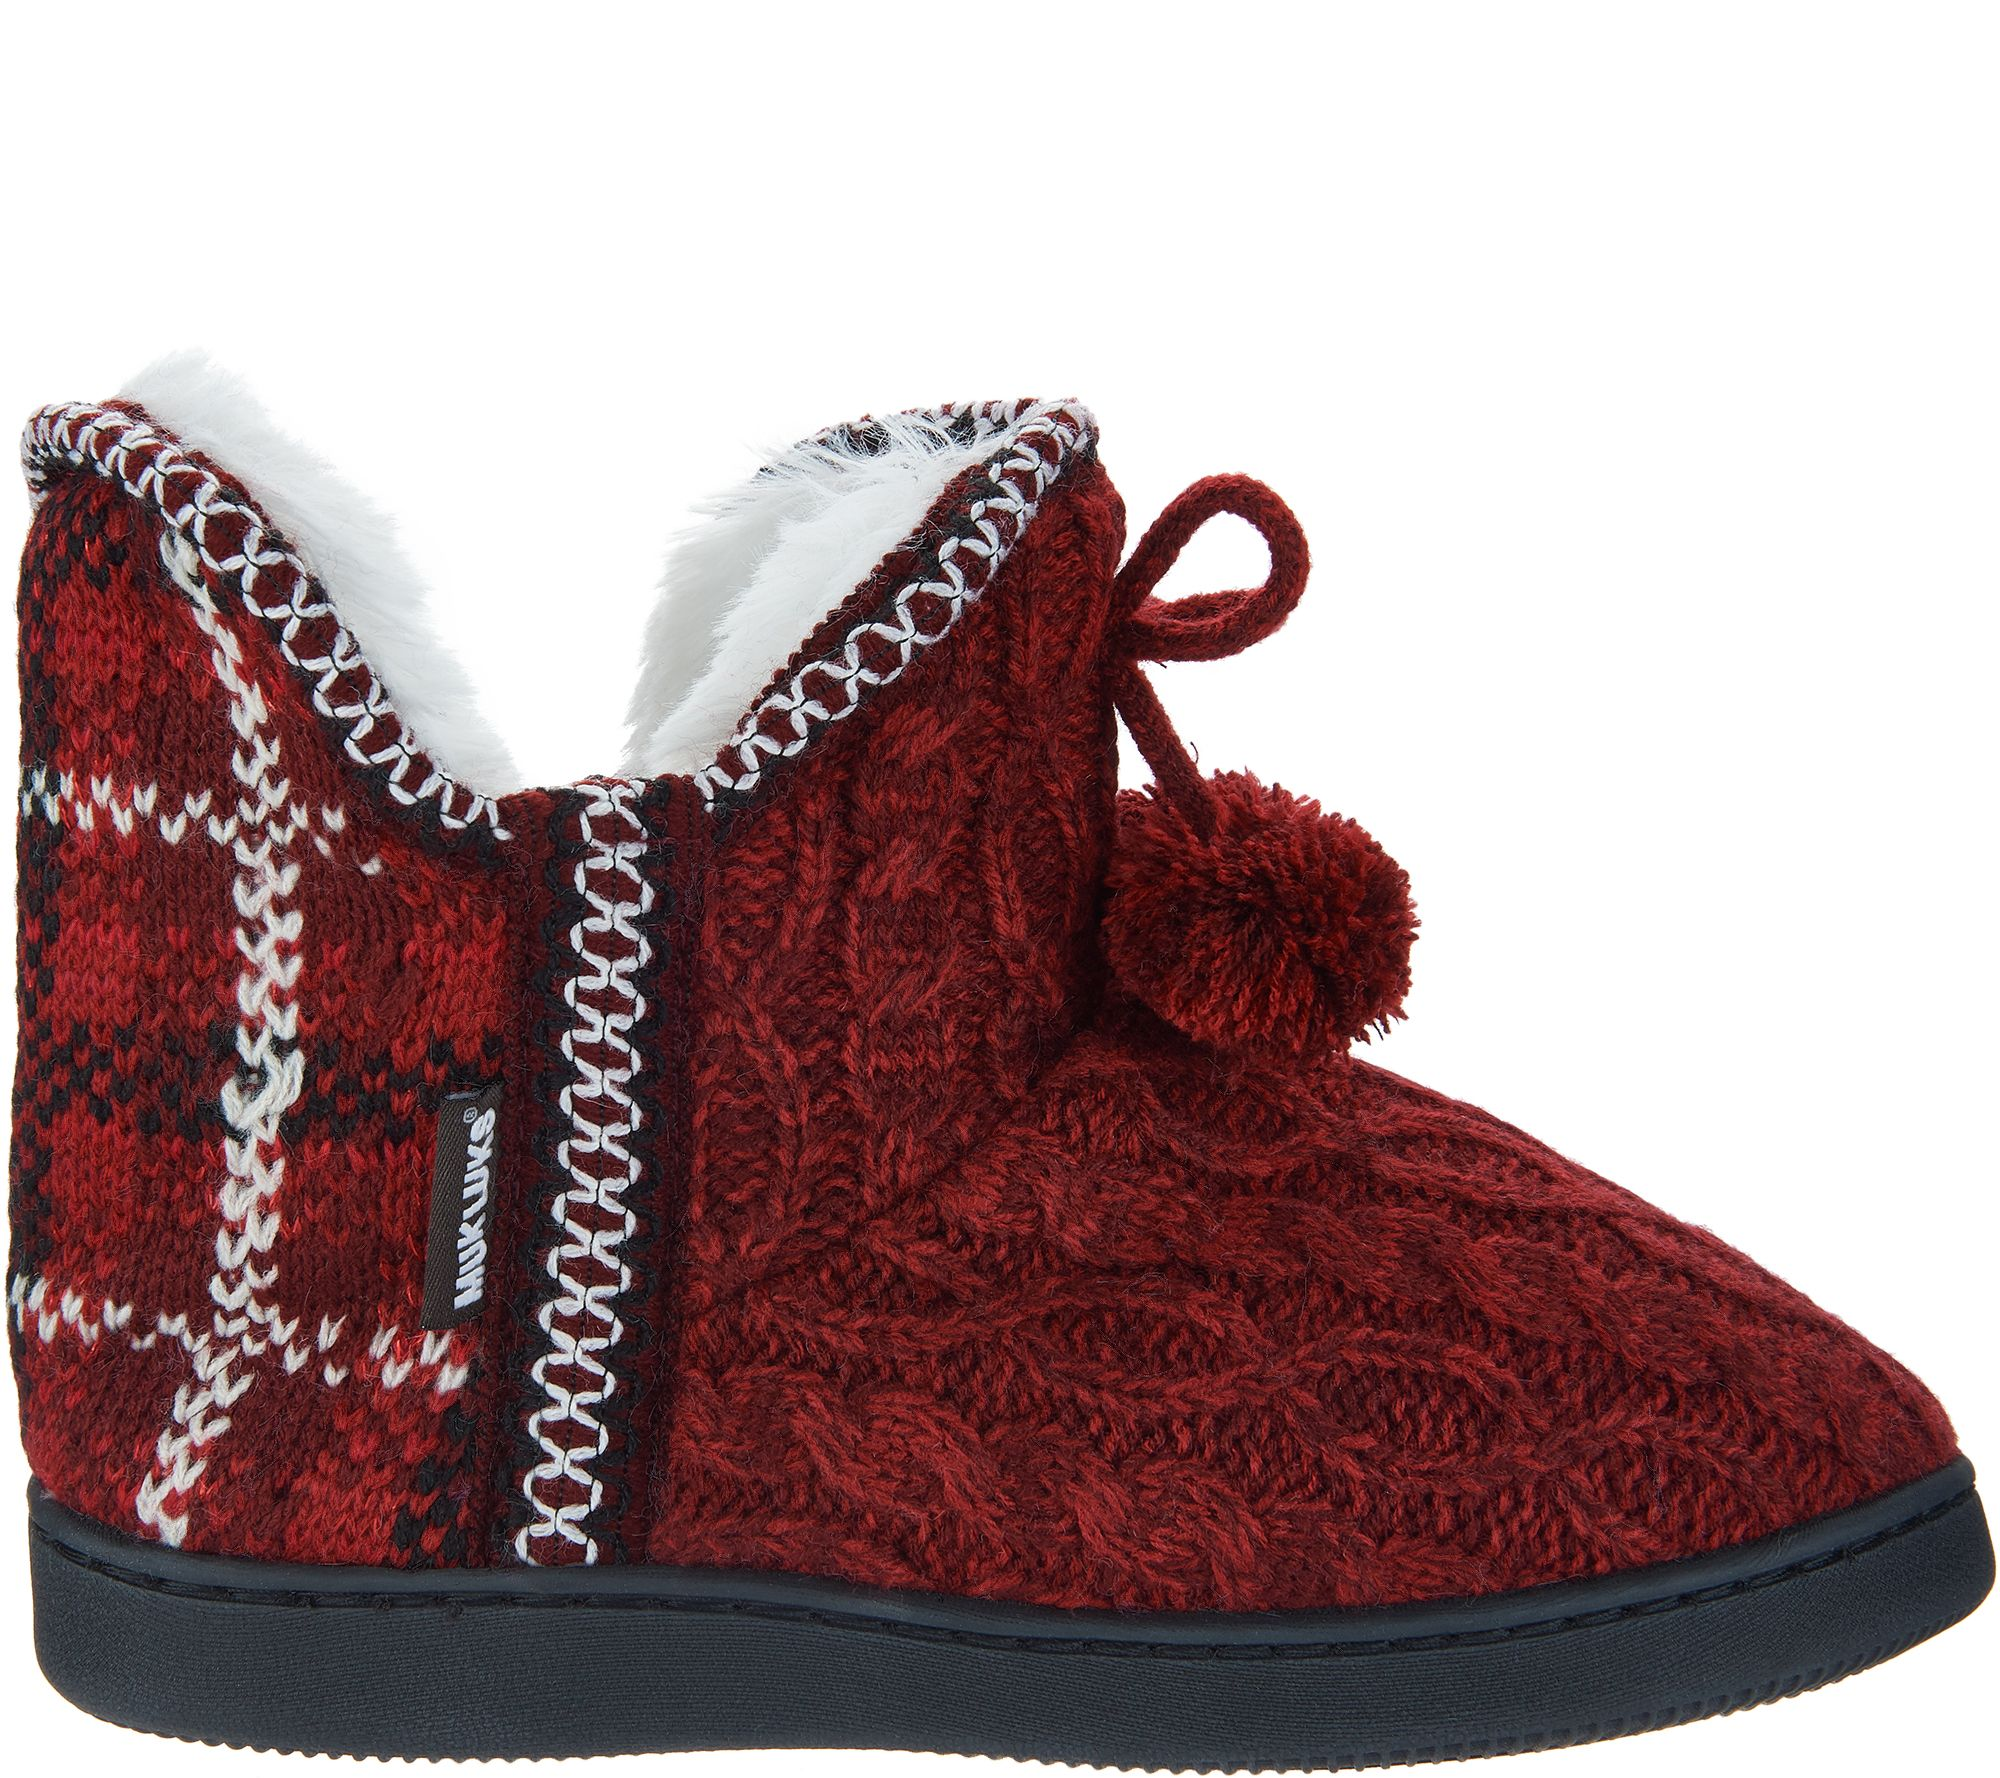 0780e893fcfb MUK LUKS Amira Slipper Boots with Faux Fur Lining - Page 1 — QVC.com